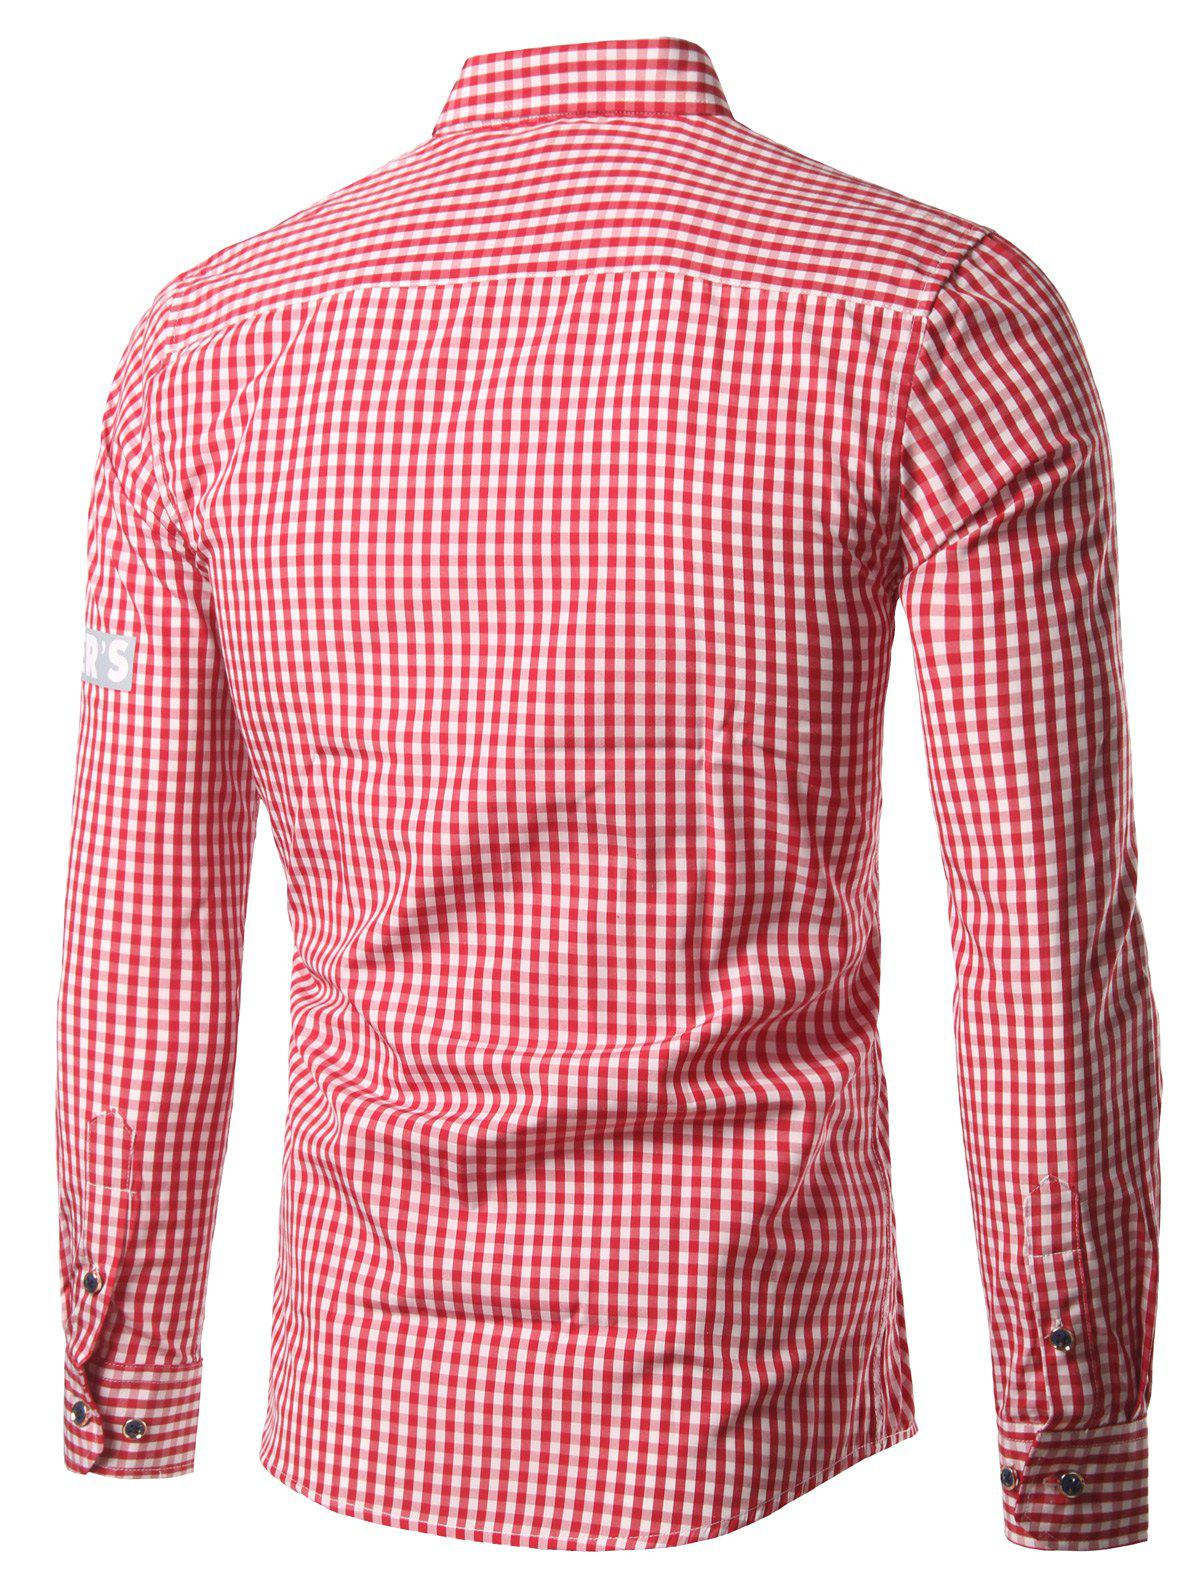 Grille Stripe col rabattu patché Plus Size Shirt - Rouge L